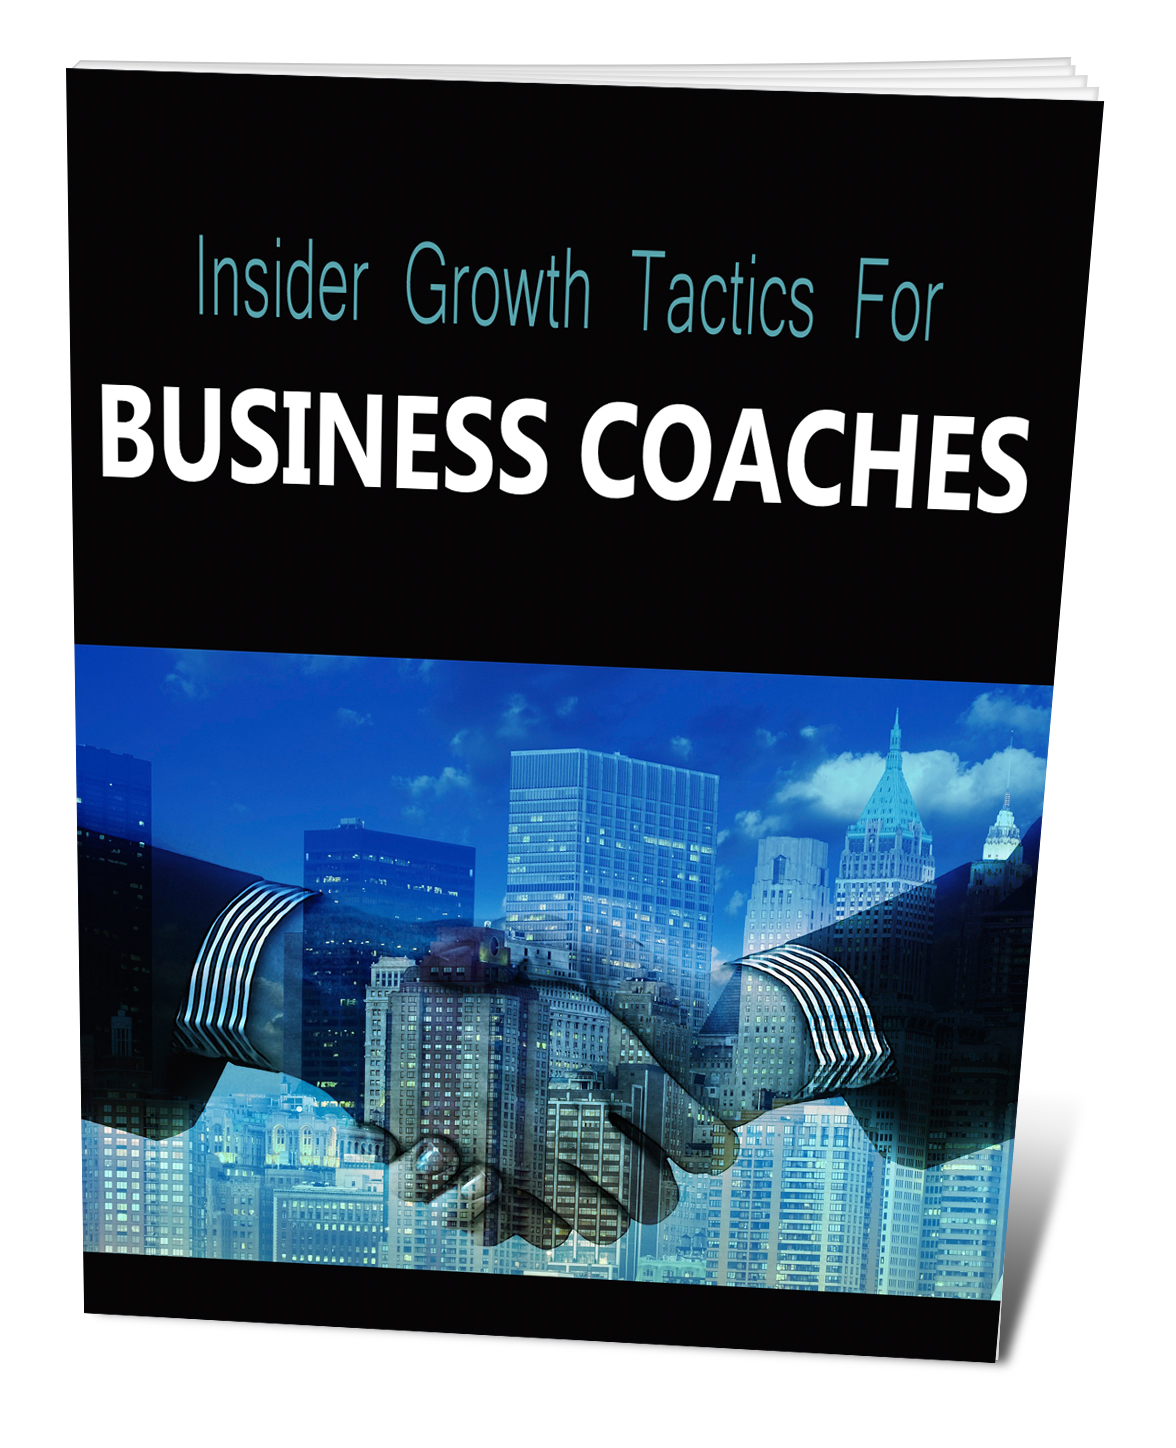 Insider Growth Tactics For Business Coaches